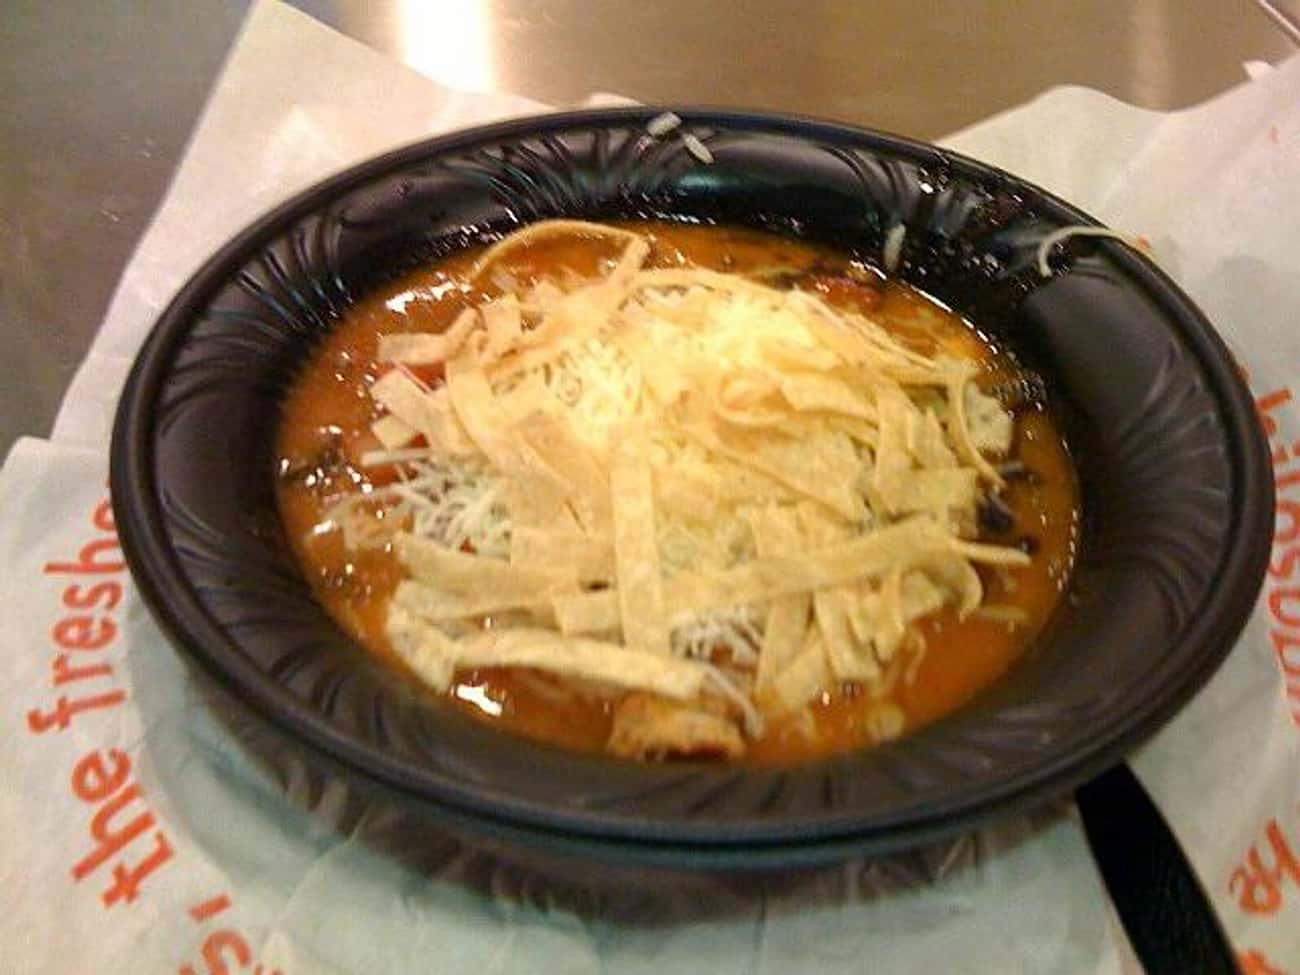 Mexican Gumbo Soup is listed (or ranked) 3 on the list Qdoba Recipes